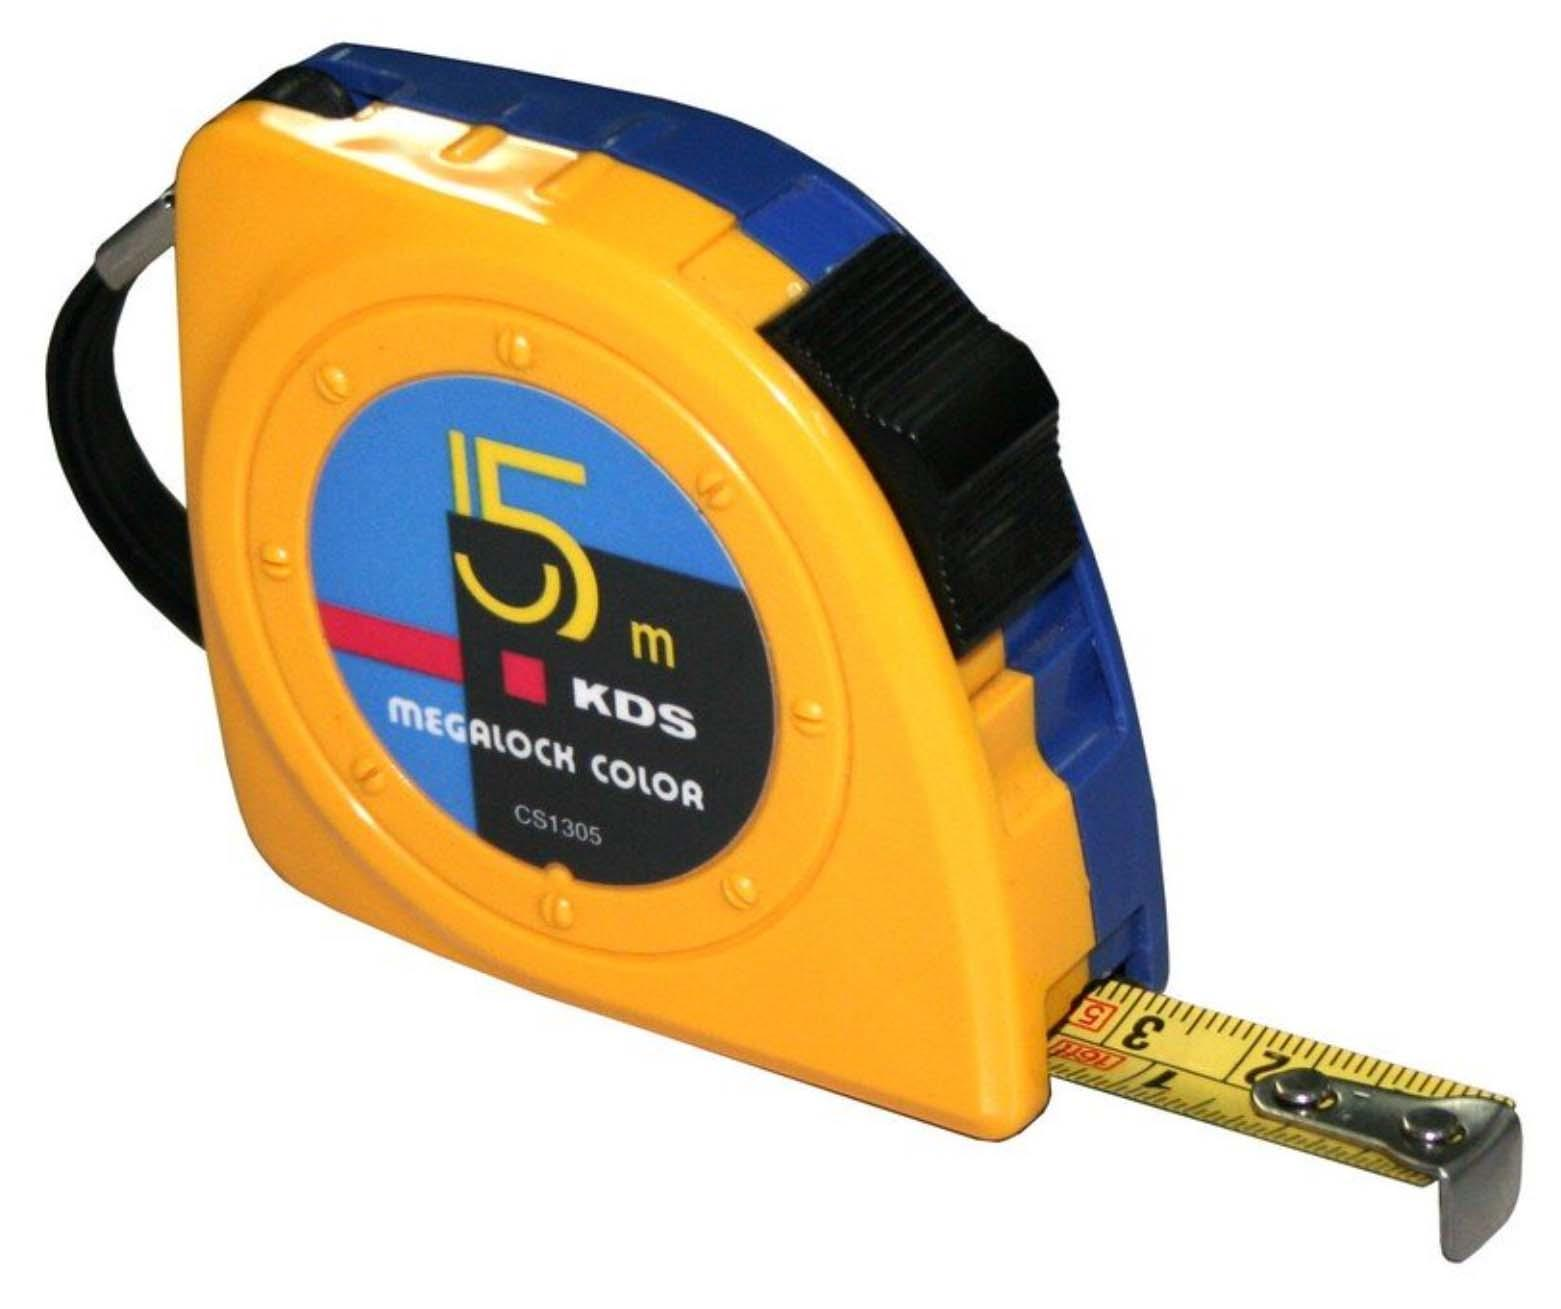 gambar KDS measuring tape 5M